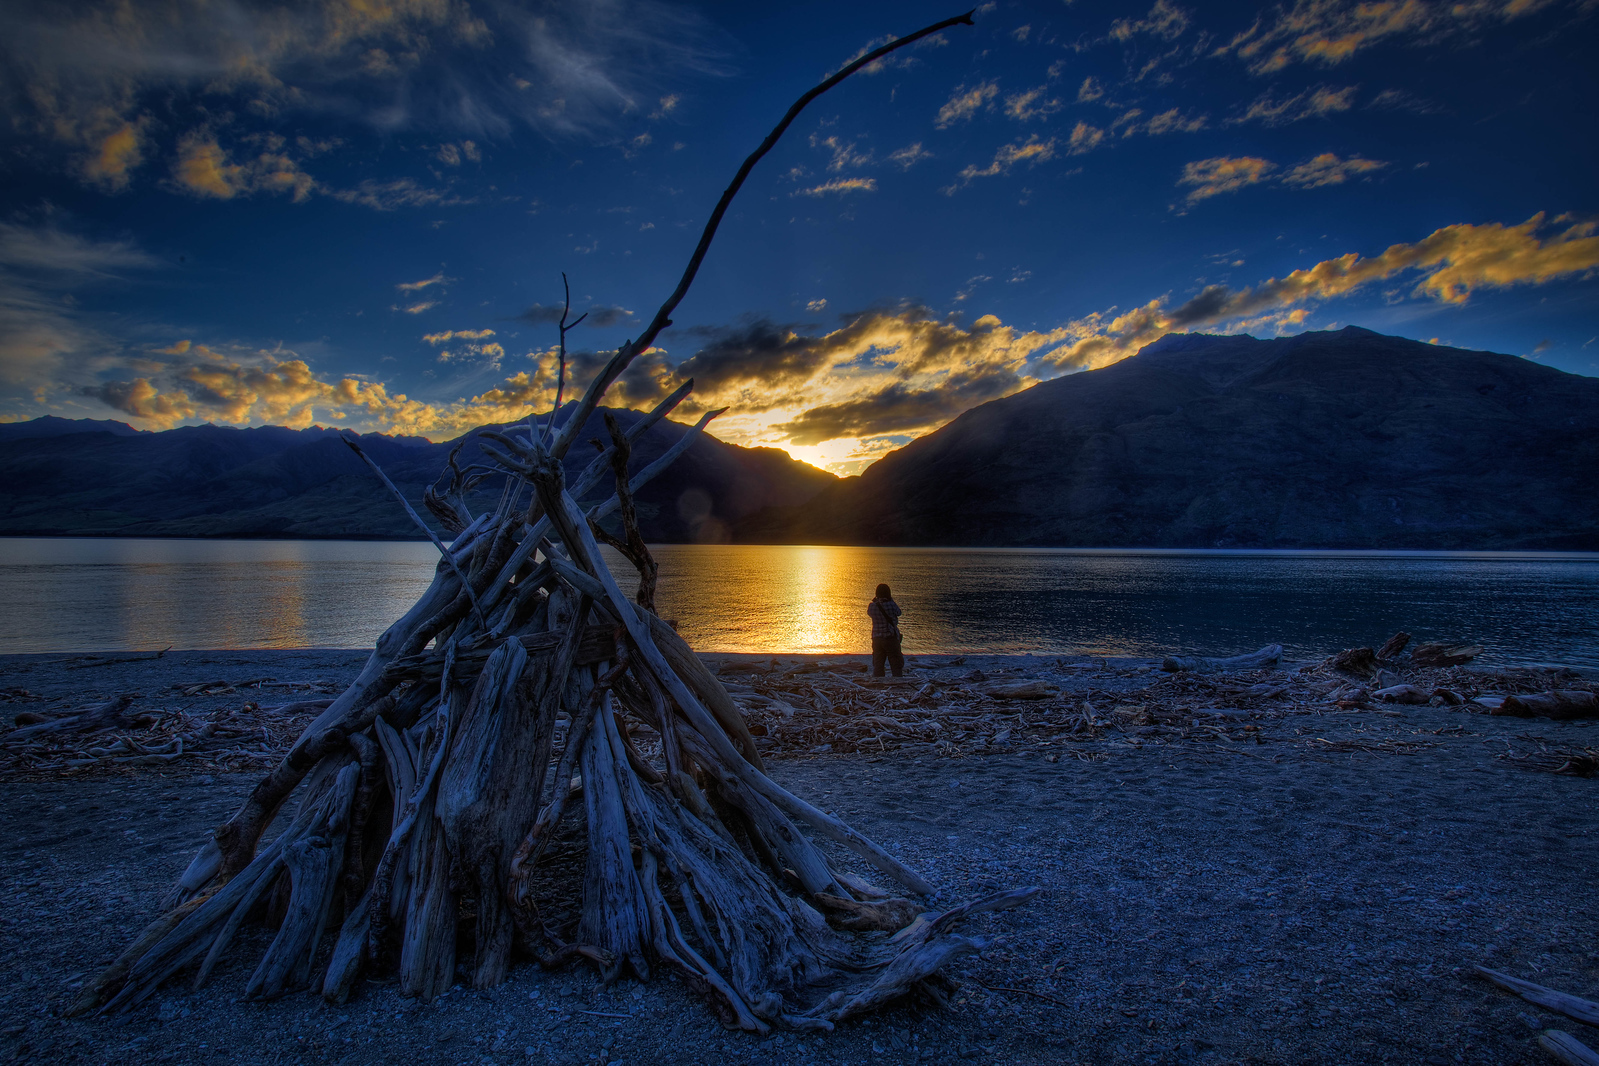 Taking a moment to enjoy the sunset on the South Island of New Zealand.